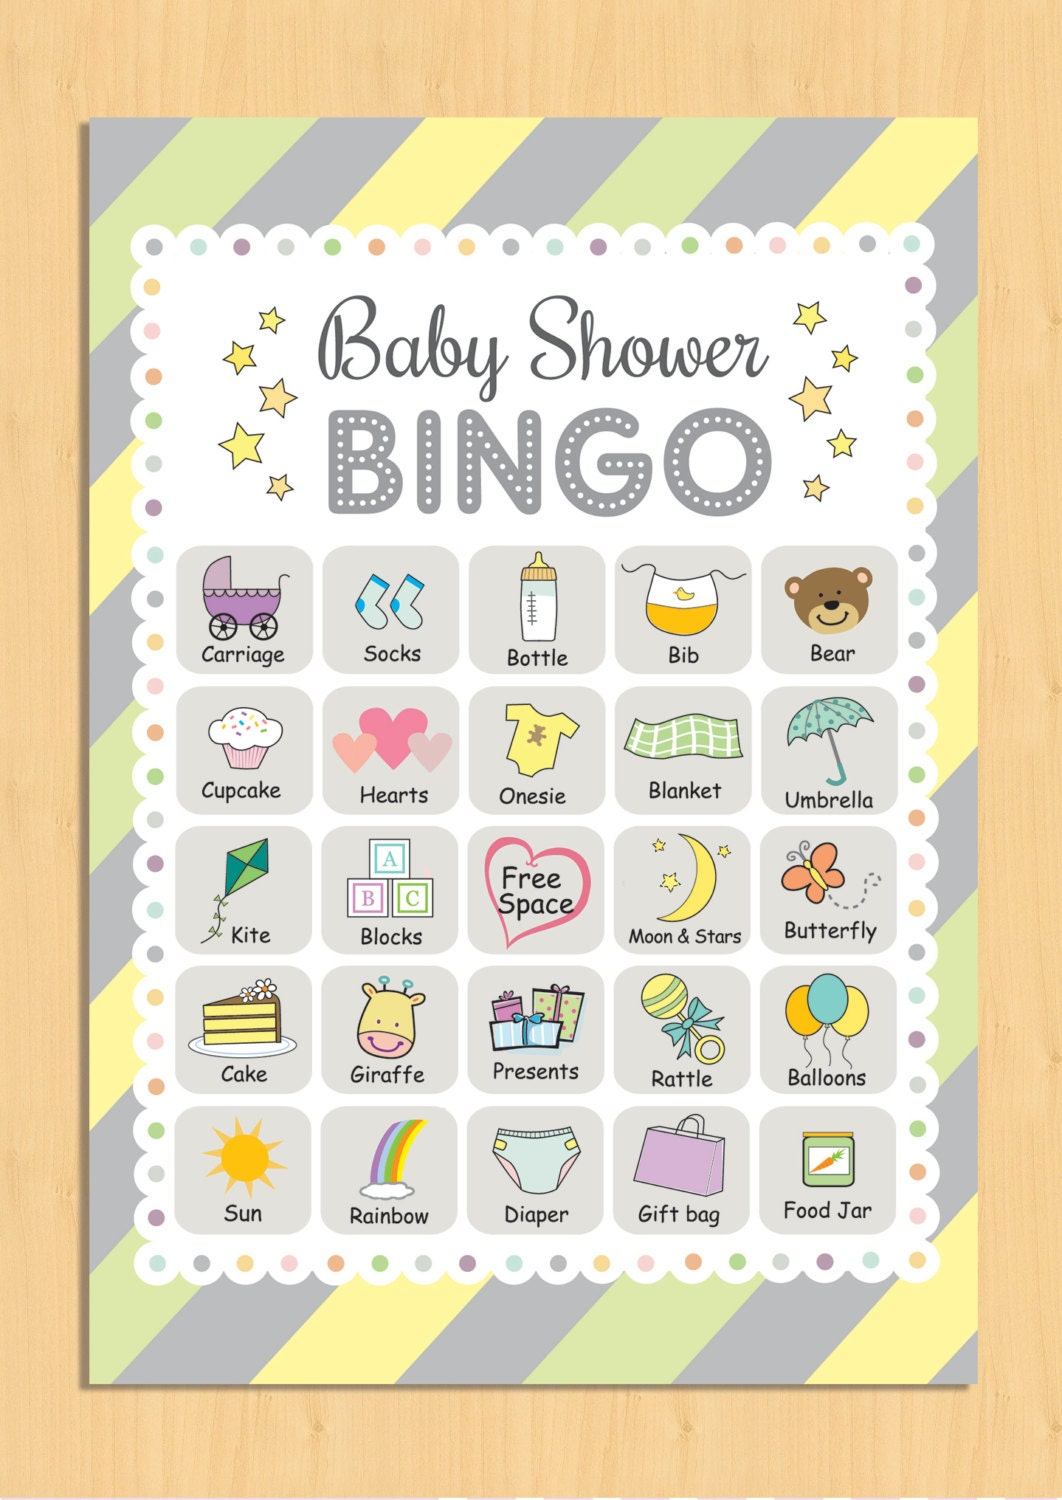 It's just a picture of Sly 40 Free Printable Baby Shower Bingo Cards